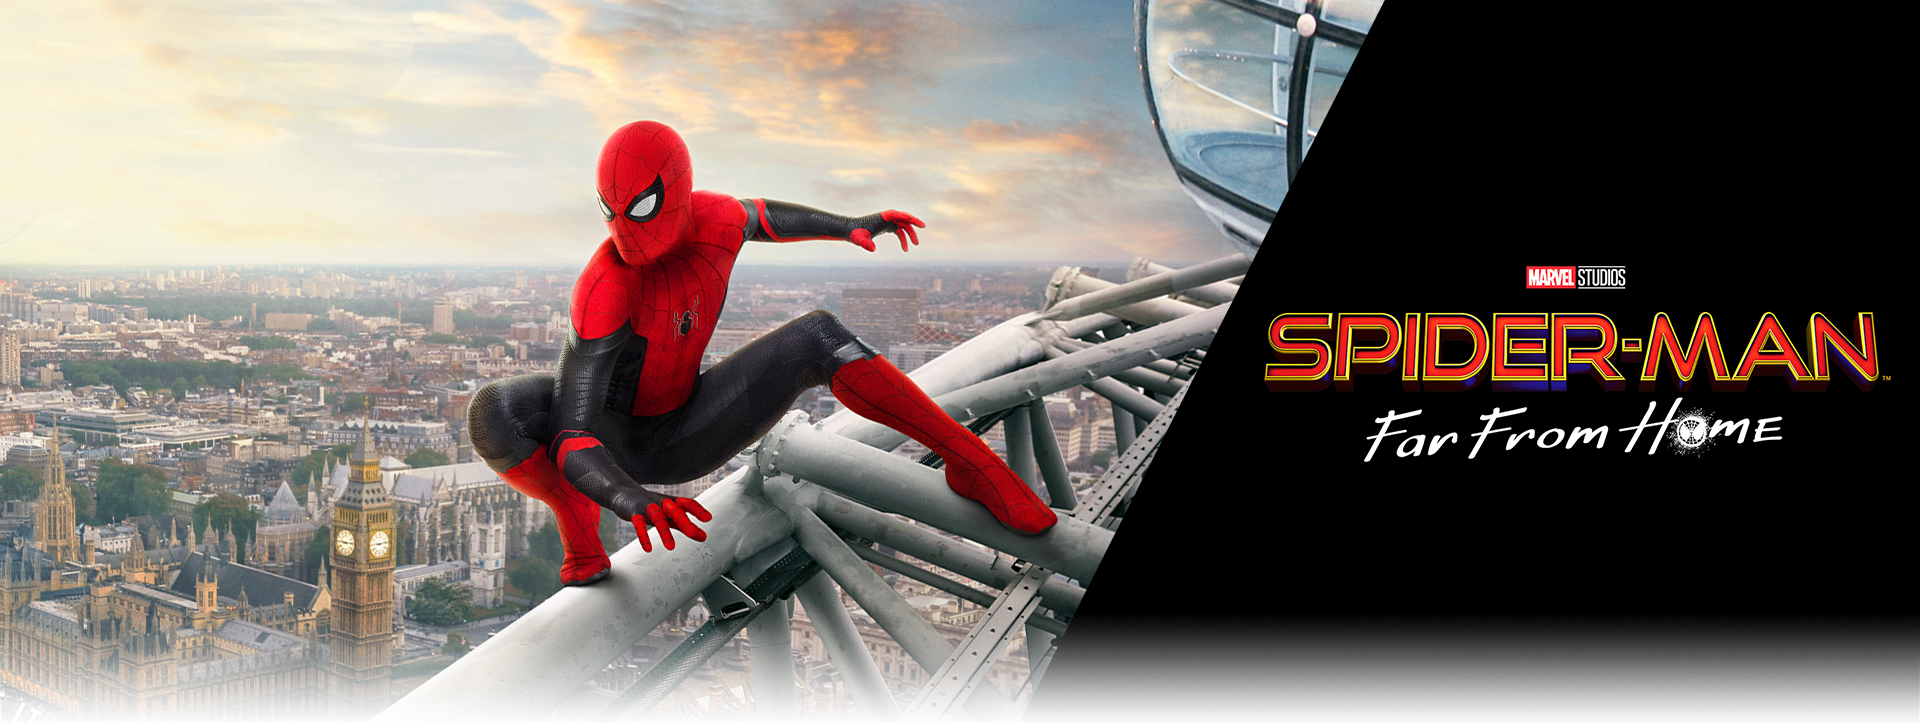 101a9ae639 Spider-Man: Far From Home: The IMAX 2D Experience - MODS | MODS